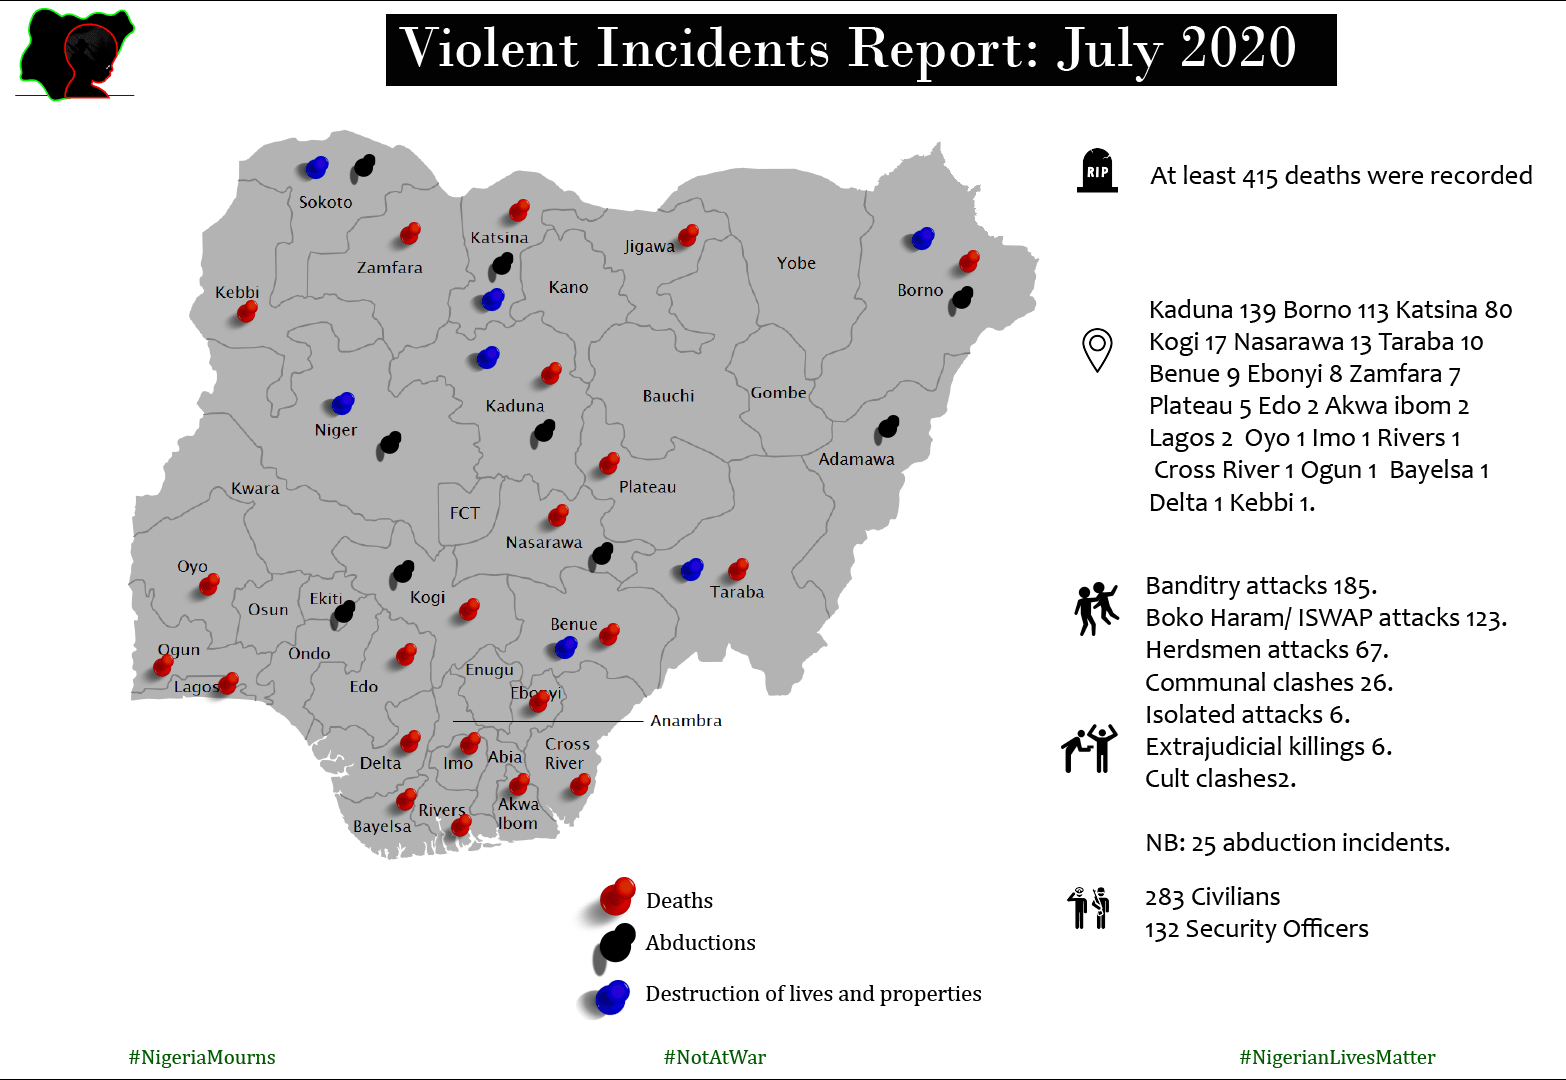 Mass Atrocities Casualties Report for July 2020